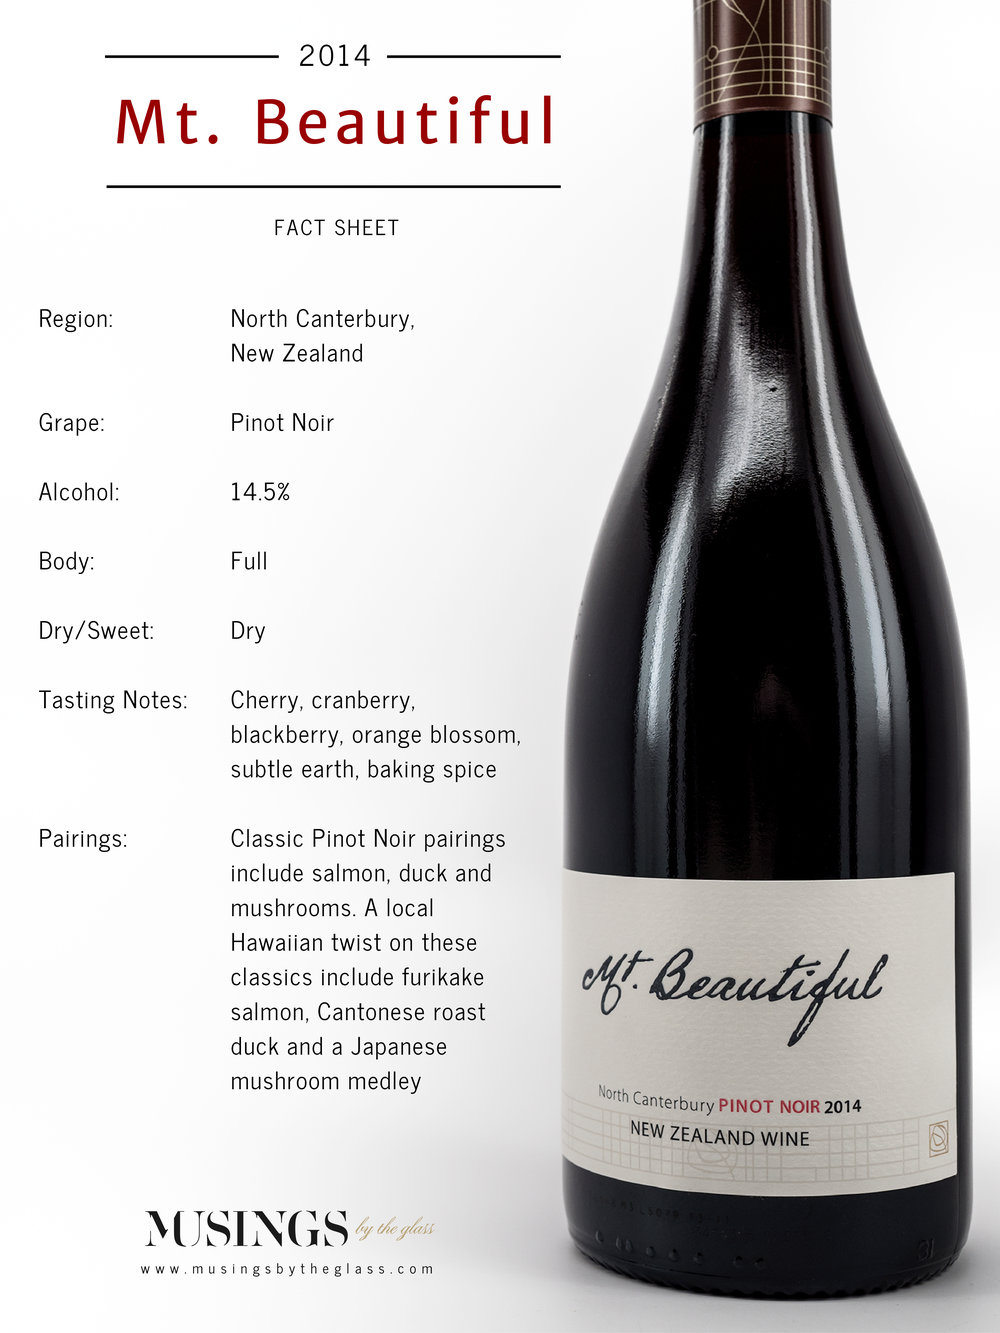 Musings by the Glass - The Pineapple-Kiwi Combination - Pinot Noir from Mt. Beautiful Winery in New Zealand